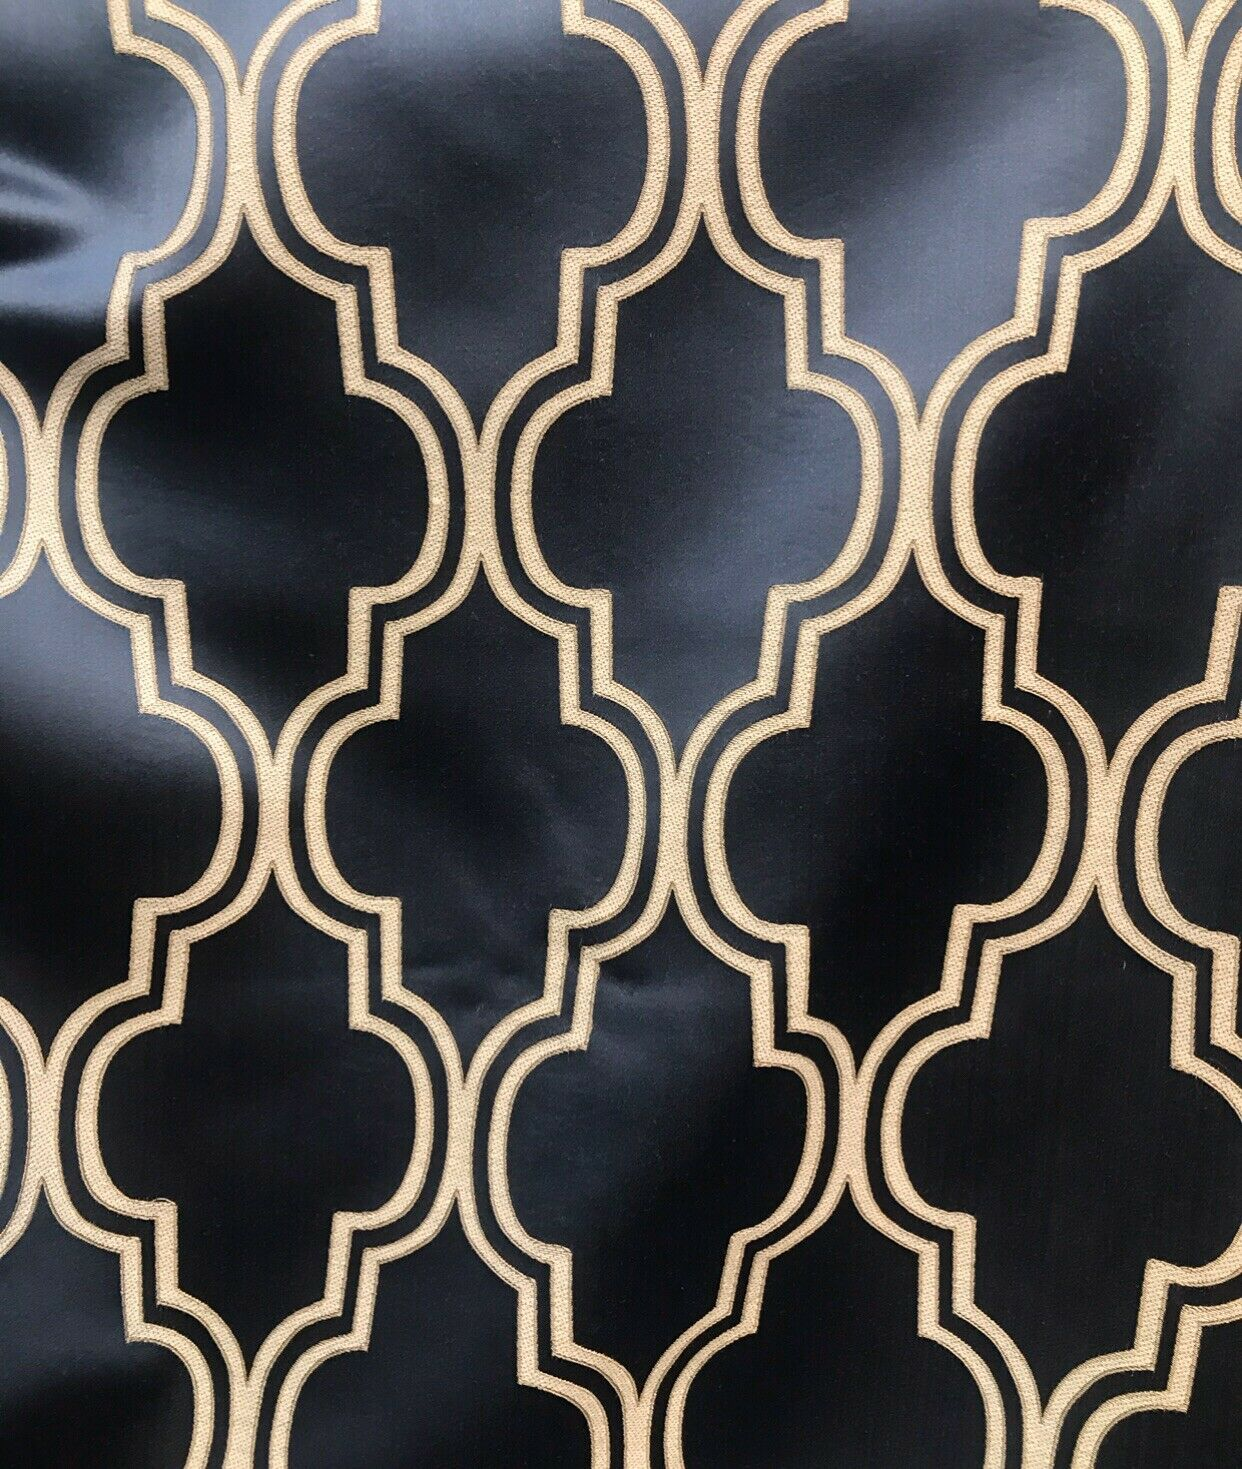 NEW! Designer Brocade Satin Geometric Fabric- Indigo Navy Blue BTY